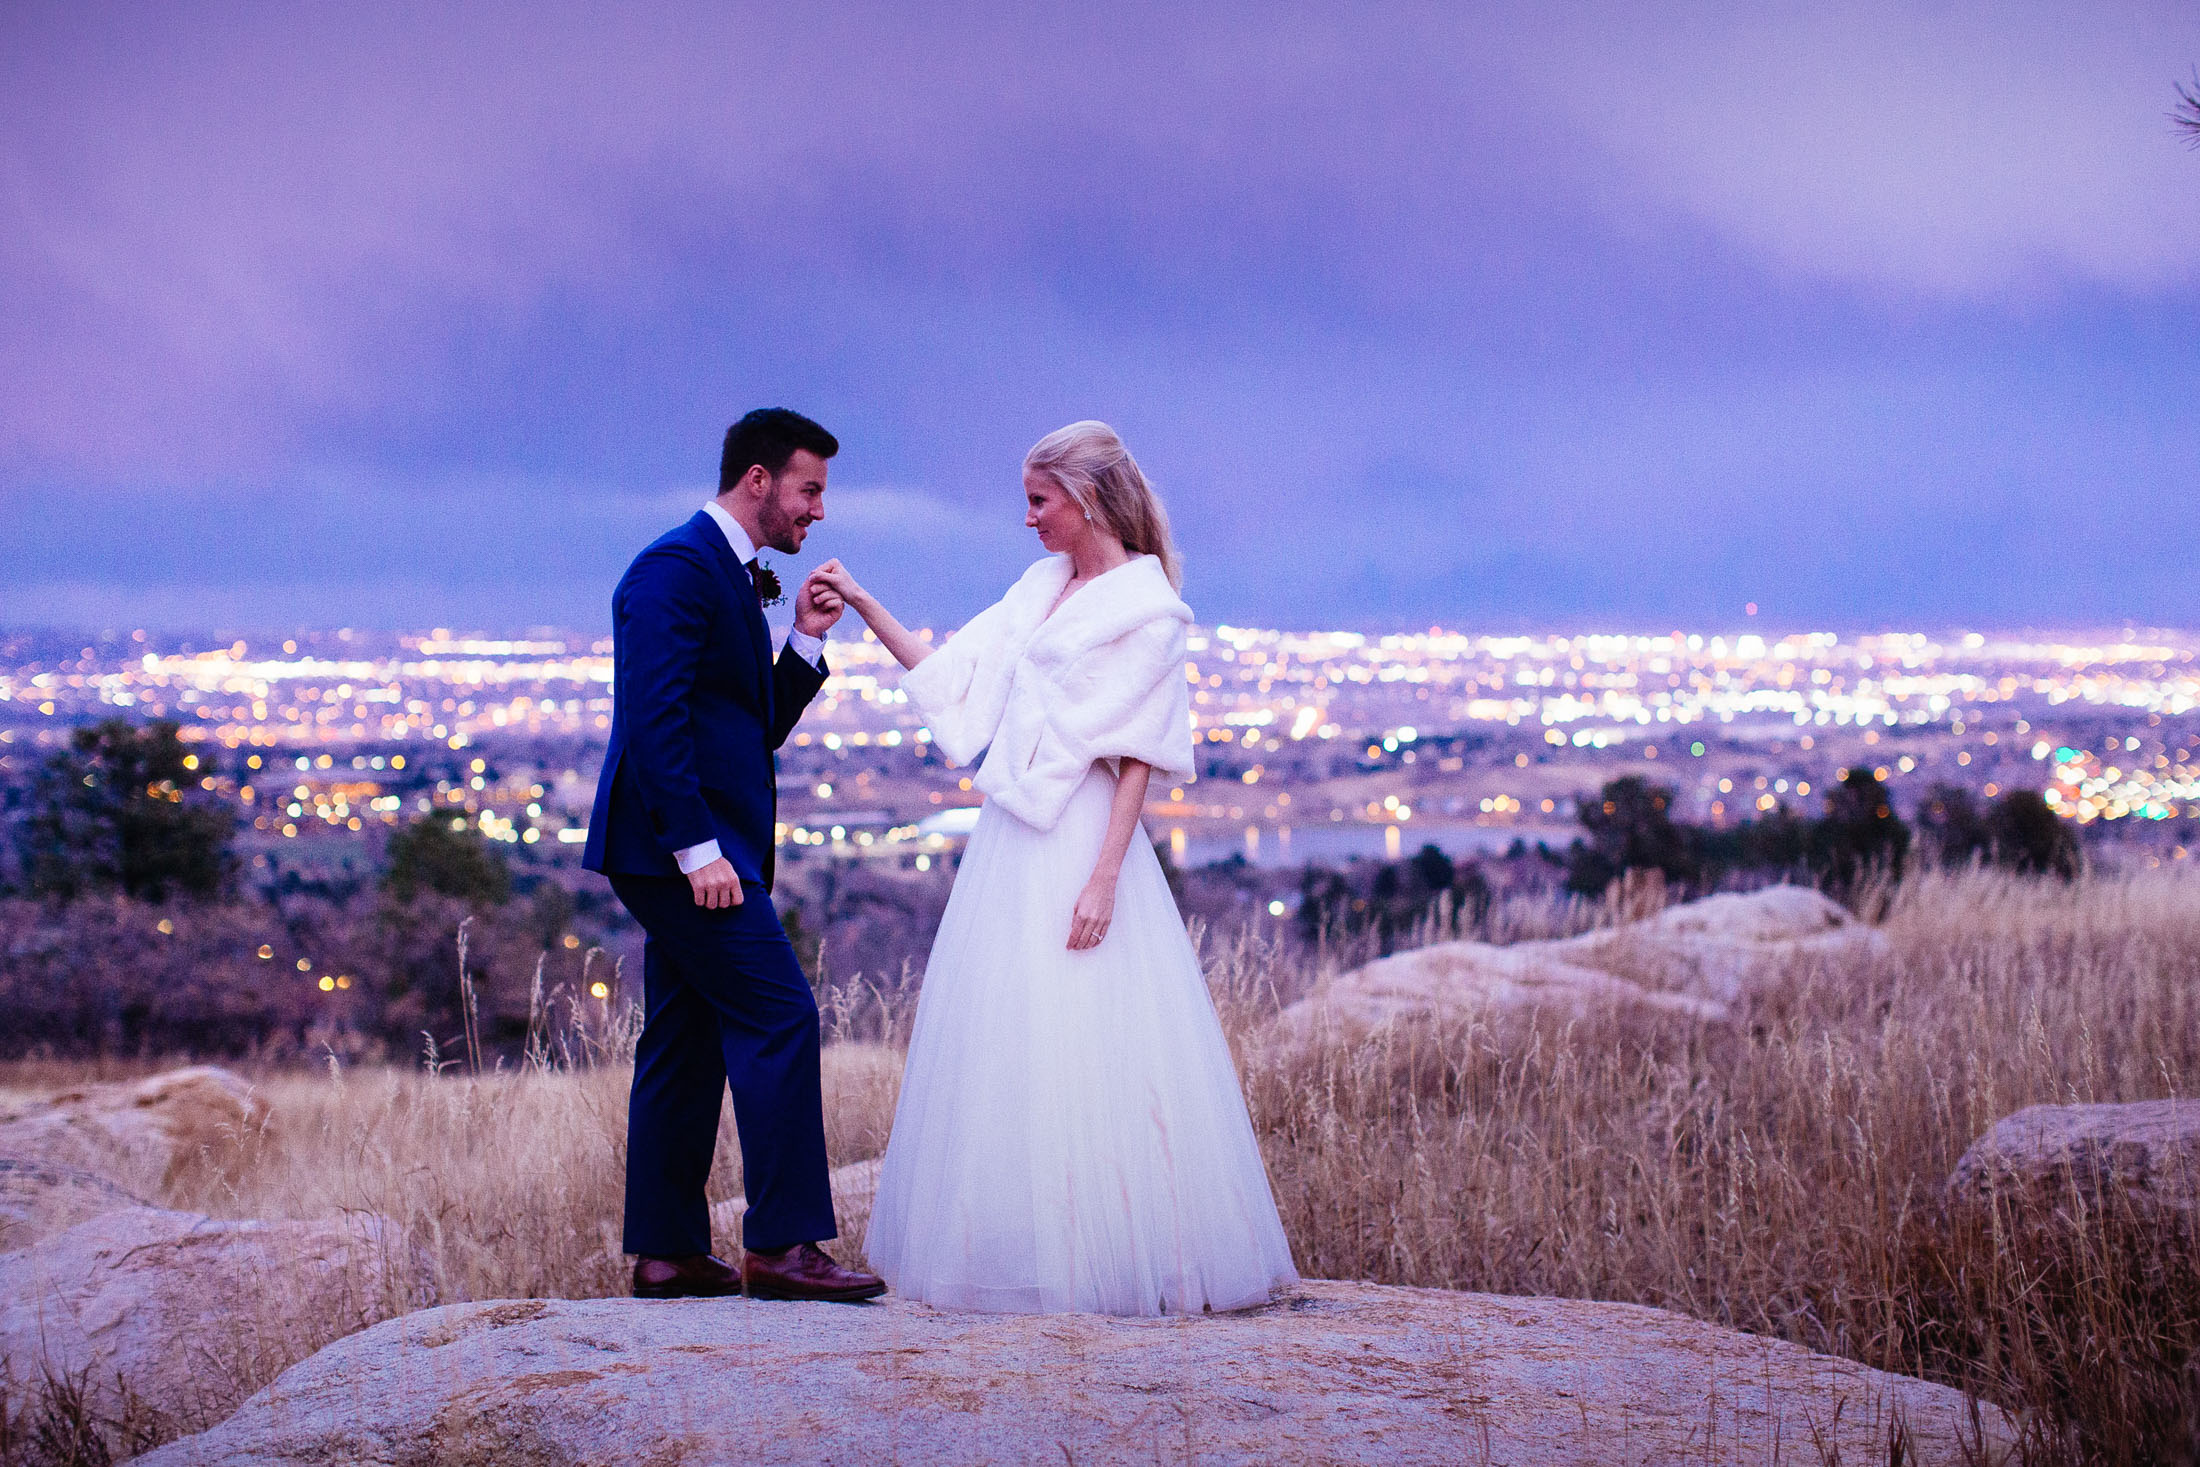 Groom kisses bride's hand as they stand on a rock overlooking the city of Colorado Springs at night.